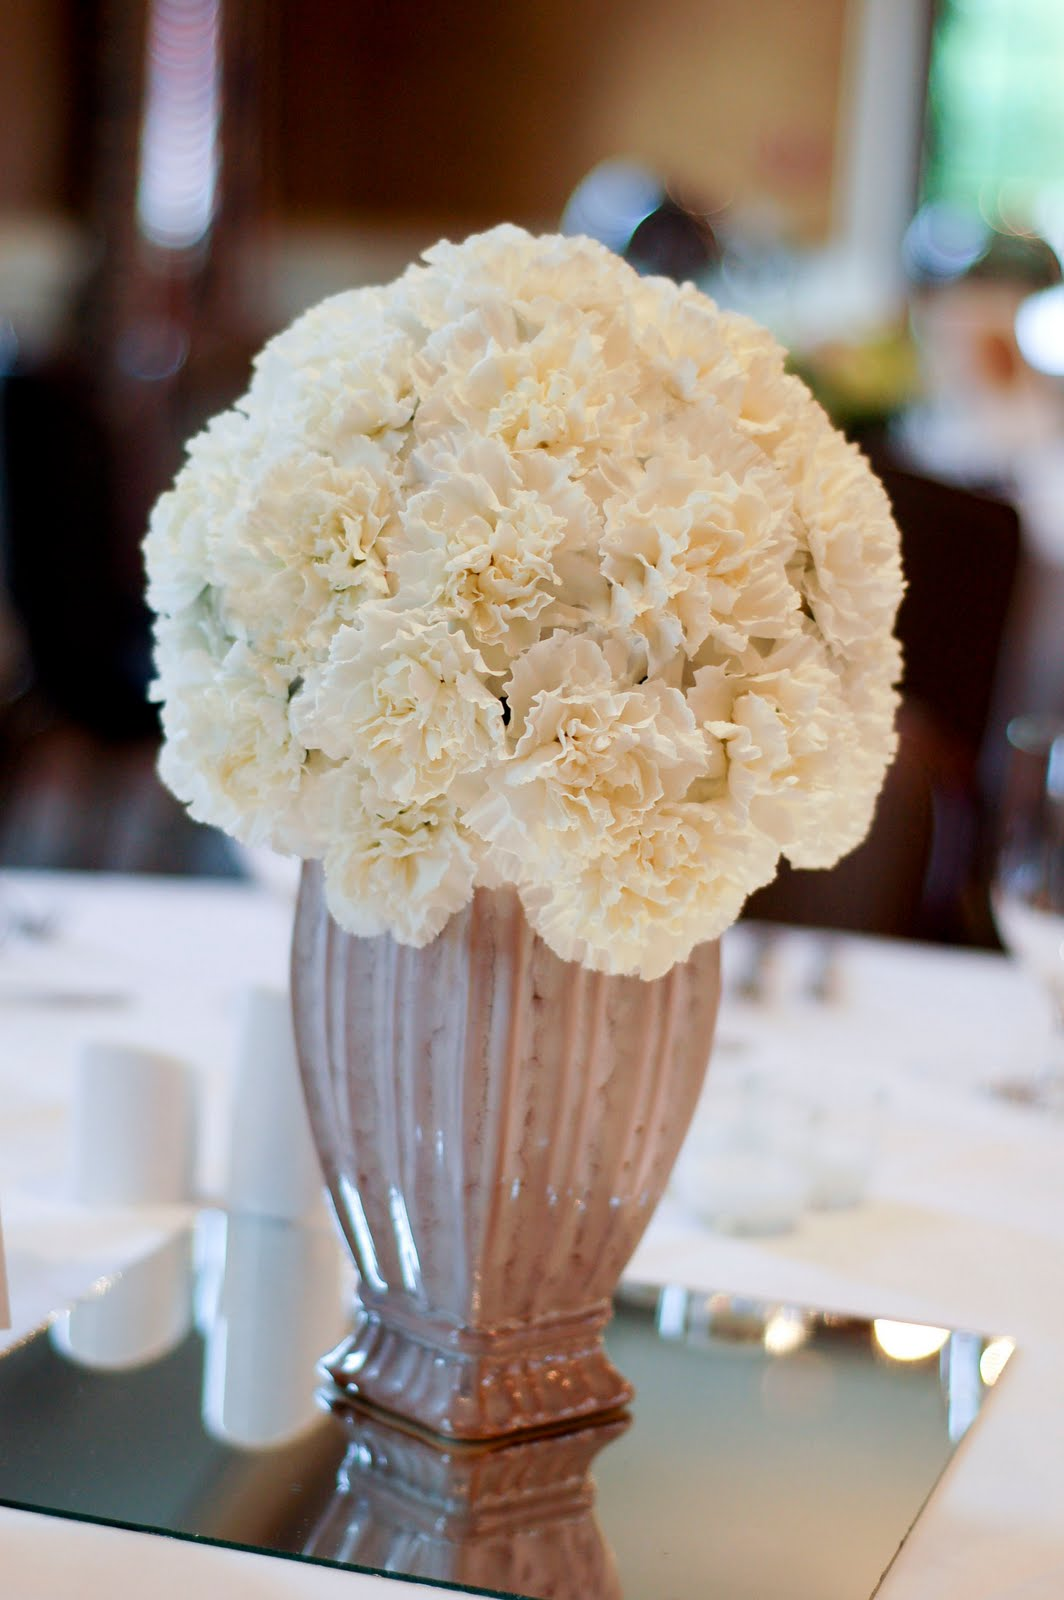 Floral Fancy White And Fluffy Flowers